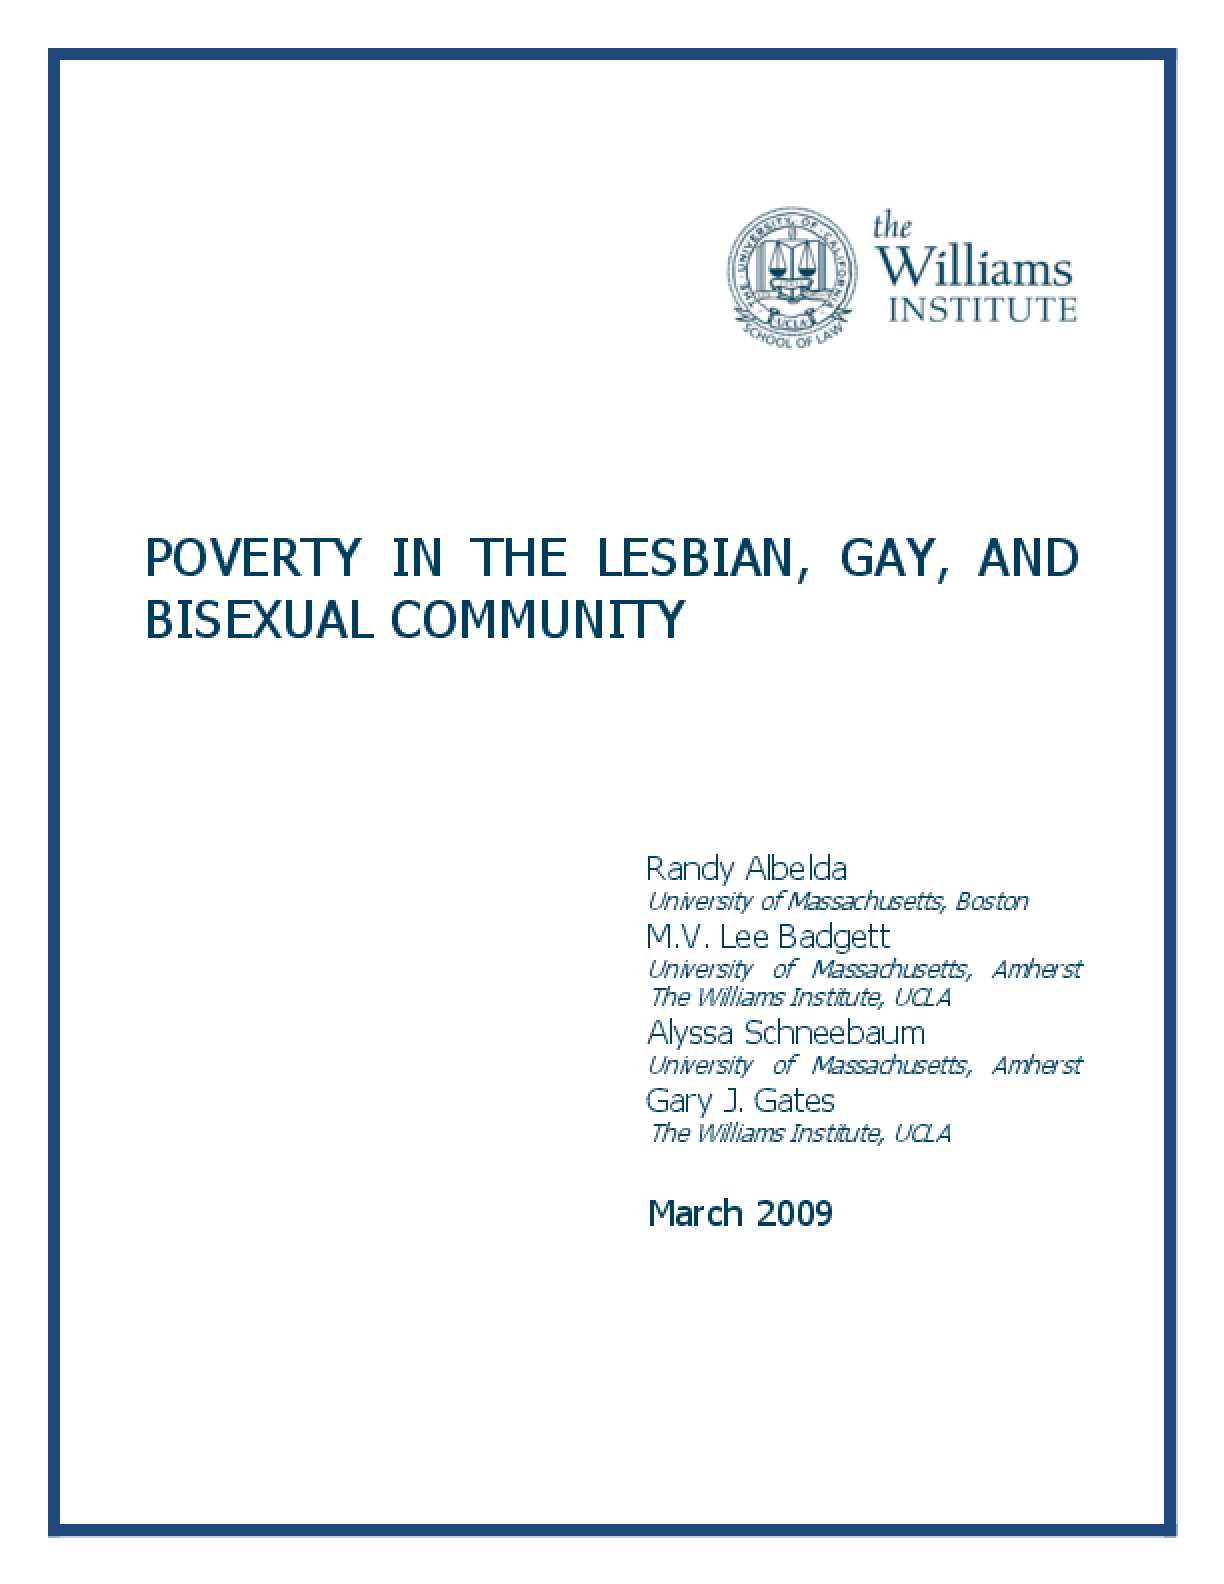 Poverty in the Lesbian, Gay, and Bisexual Community